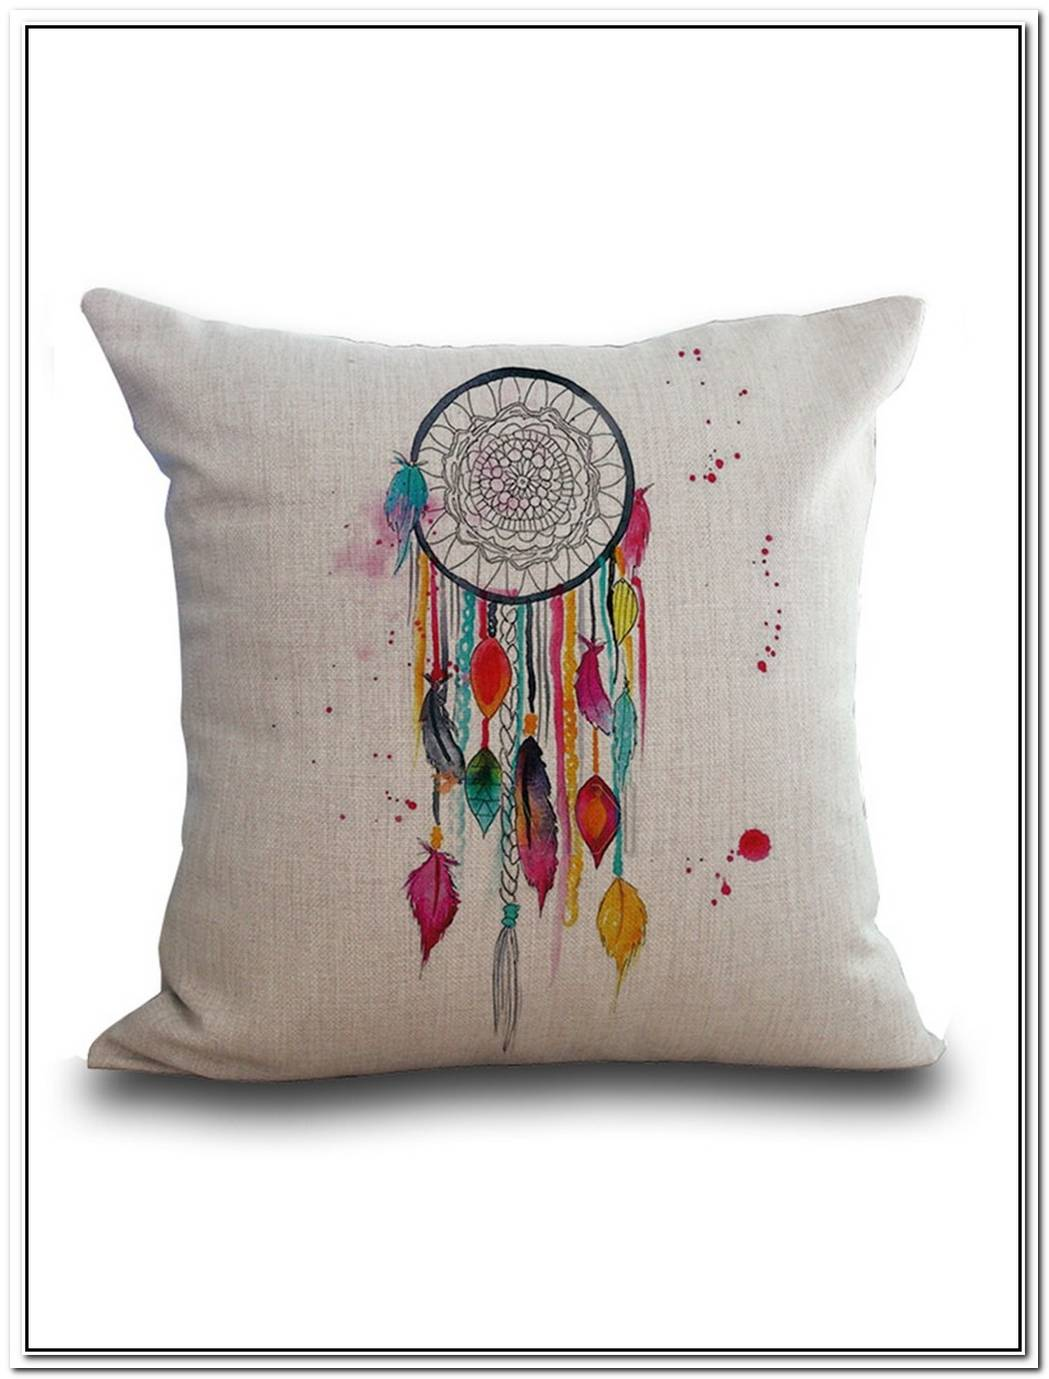 Decorative Pillows In Your Home Decor From Mimou